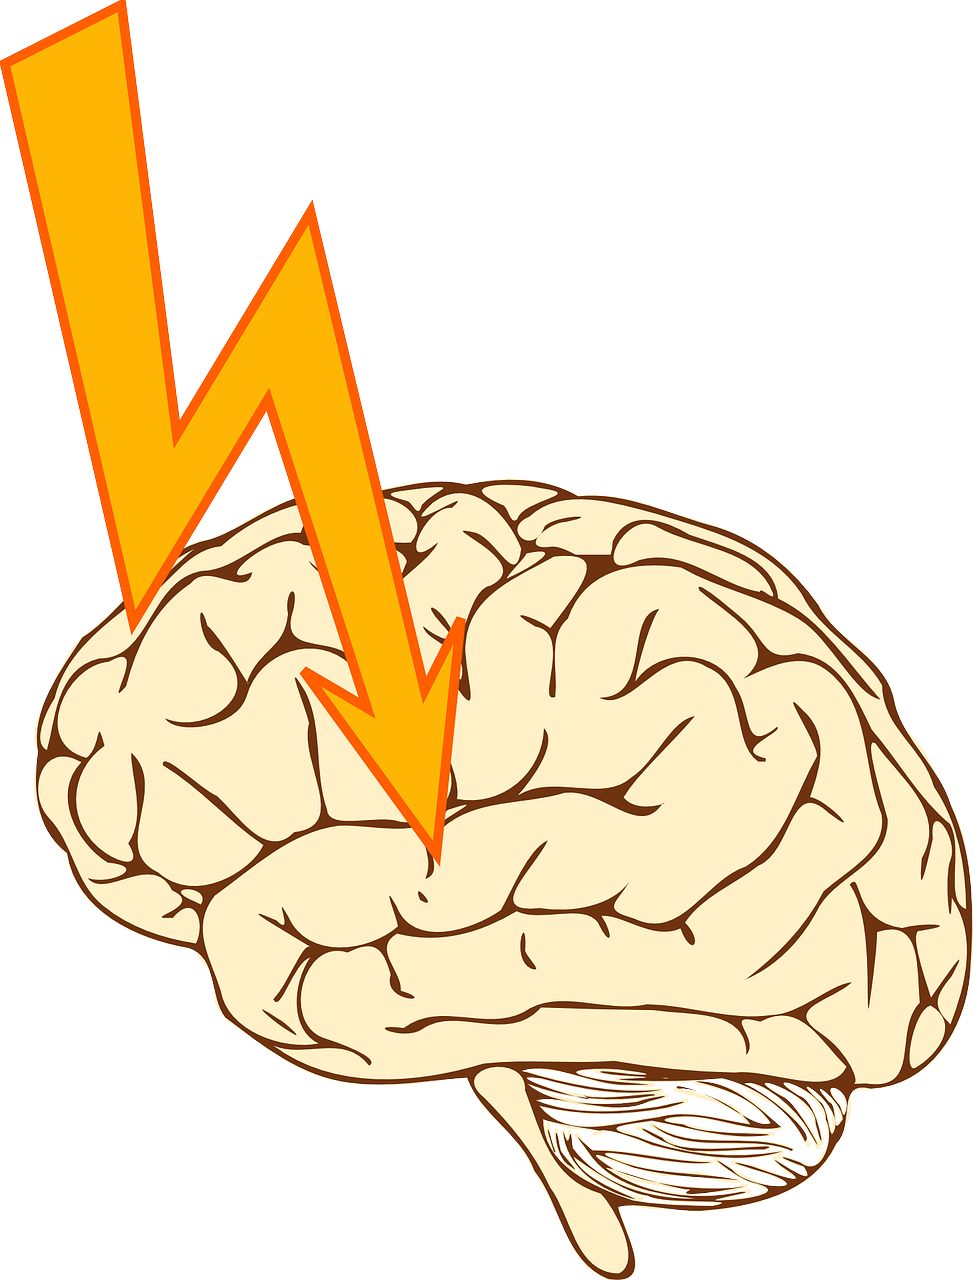 image: illustration of brain and arrow pointing to brain